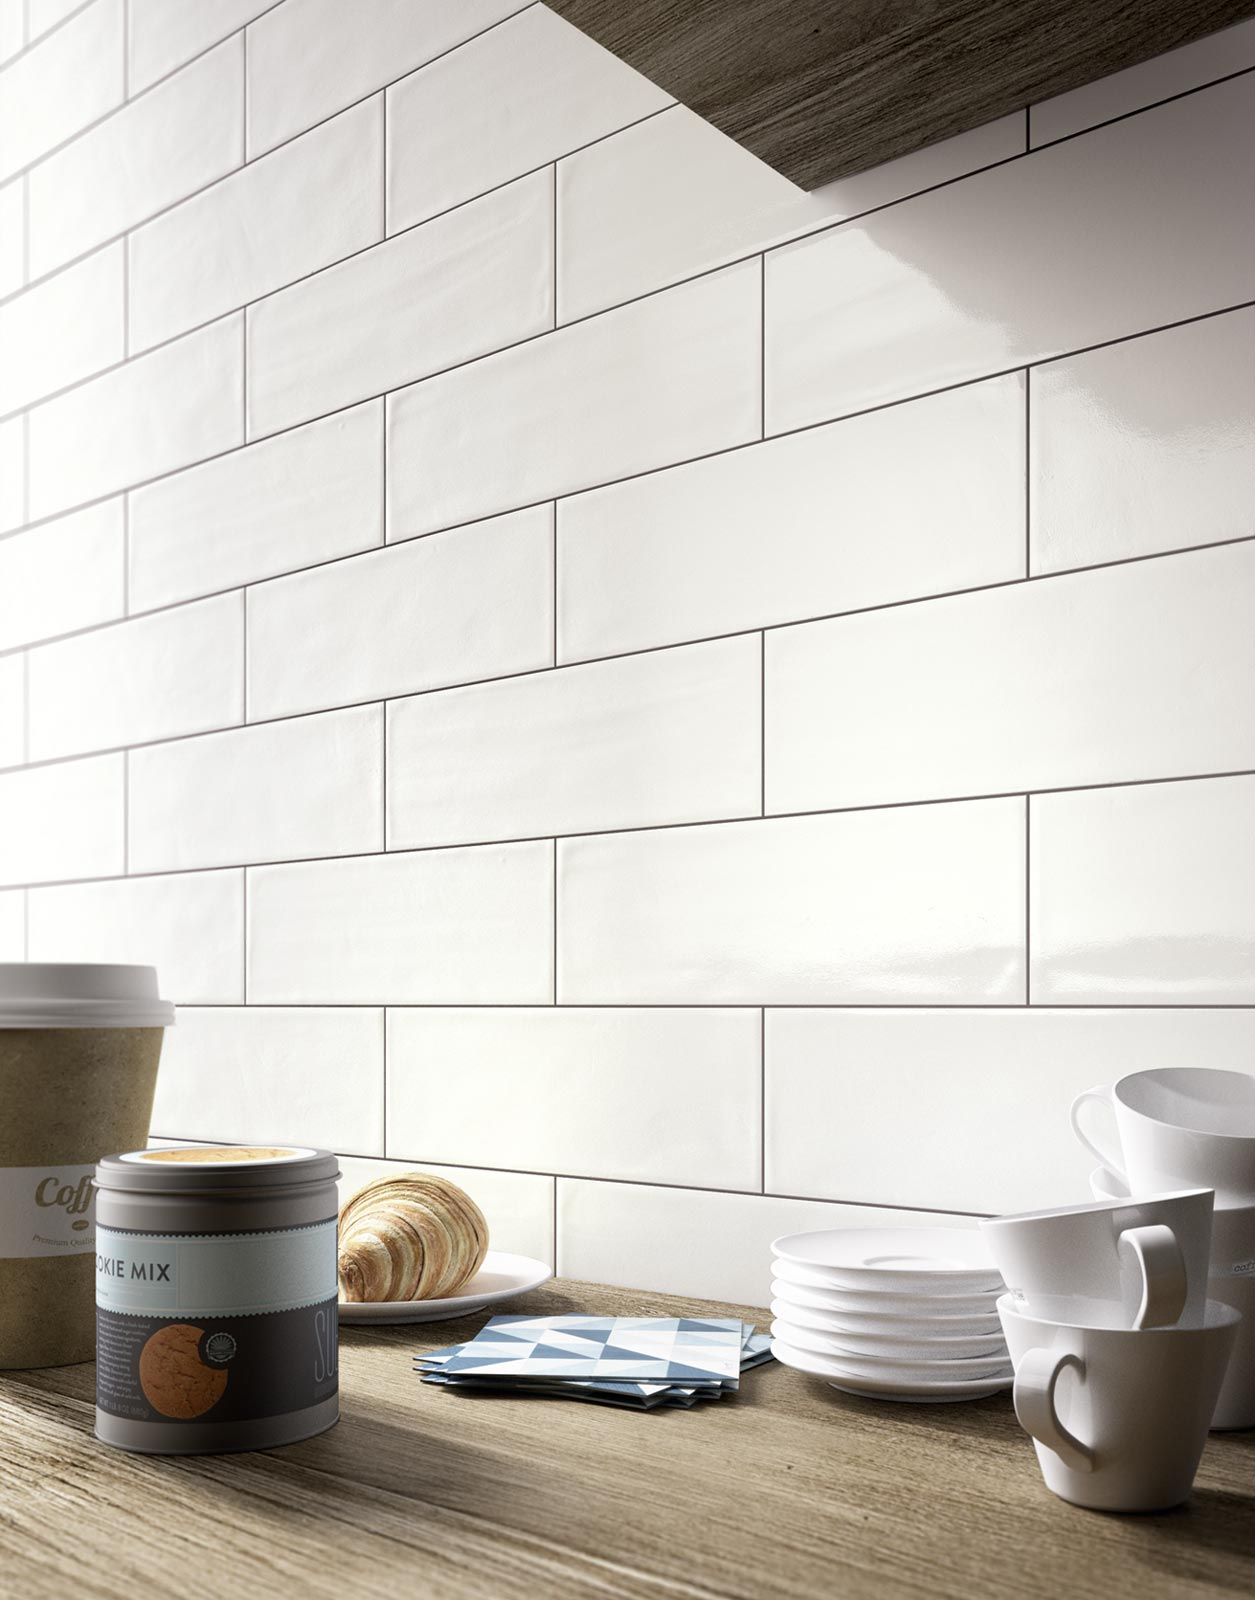 Brick glossy collection kitchen and bathroom wall tiles - Kitchen without wall tiles ...